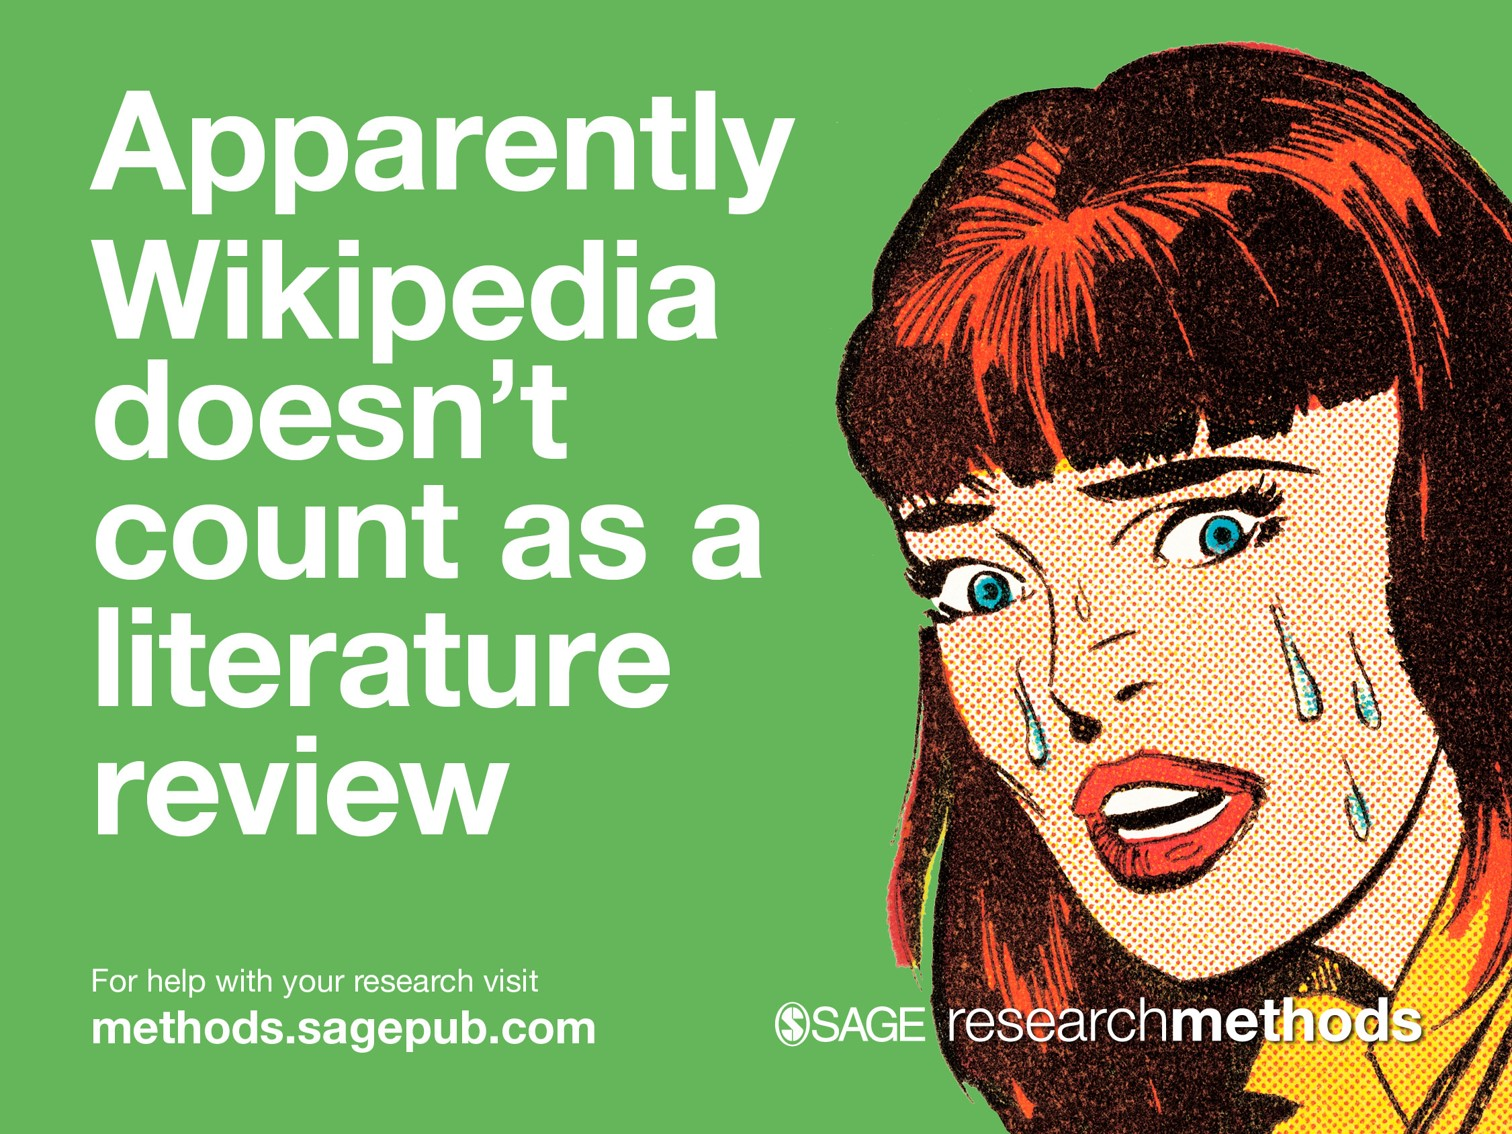 Wikipedia is not a literature review